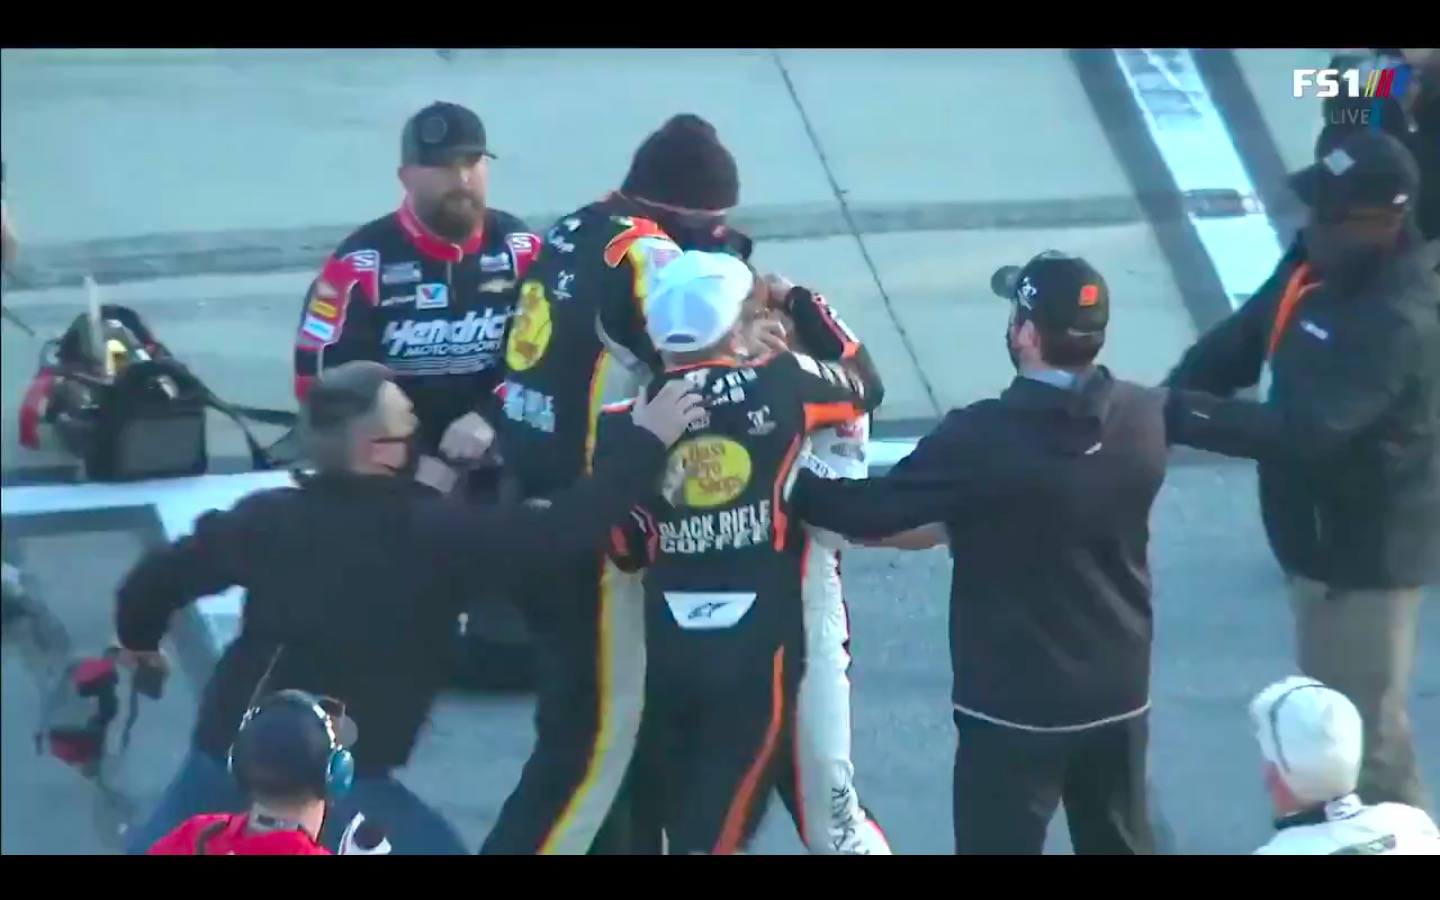 WATCH: NASCAR Drivers Get In Wild Fistfight After Fender Bender in Pit